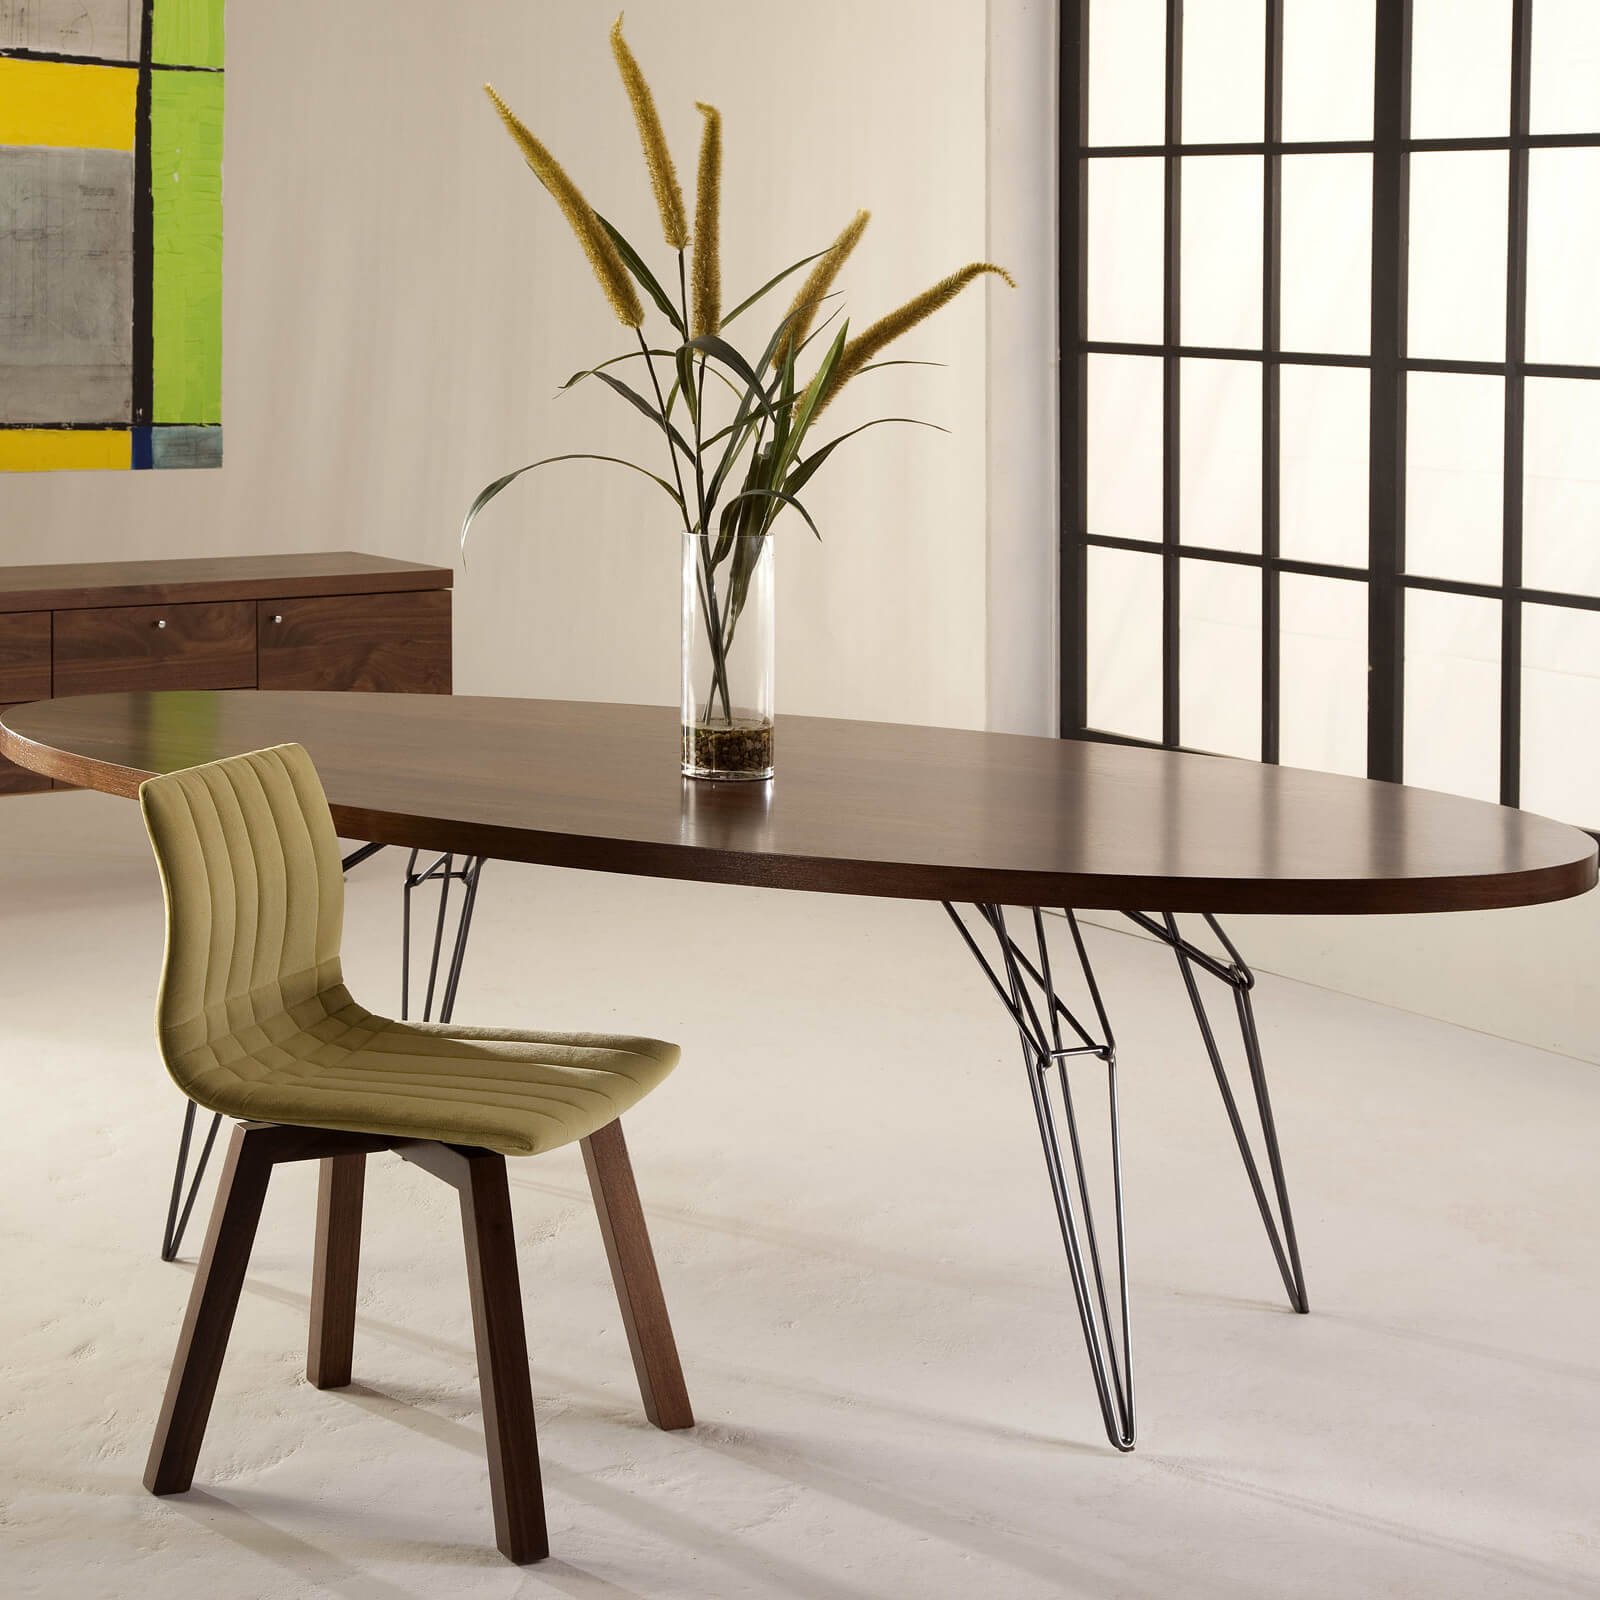 Designer Tische Esszimmer 38 Types Of Dining Room Tables Extensive Buying Guide